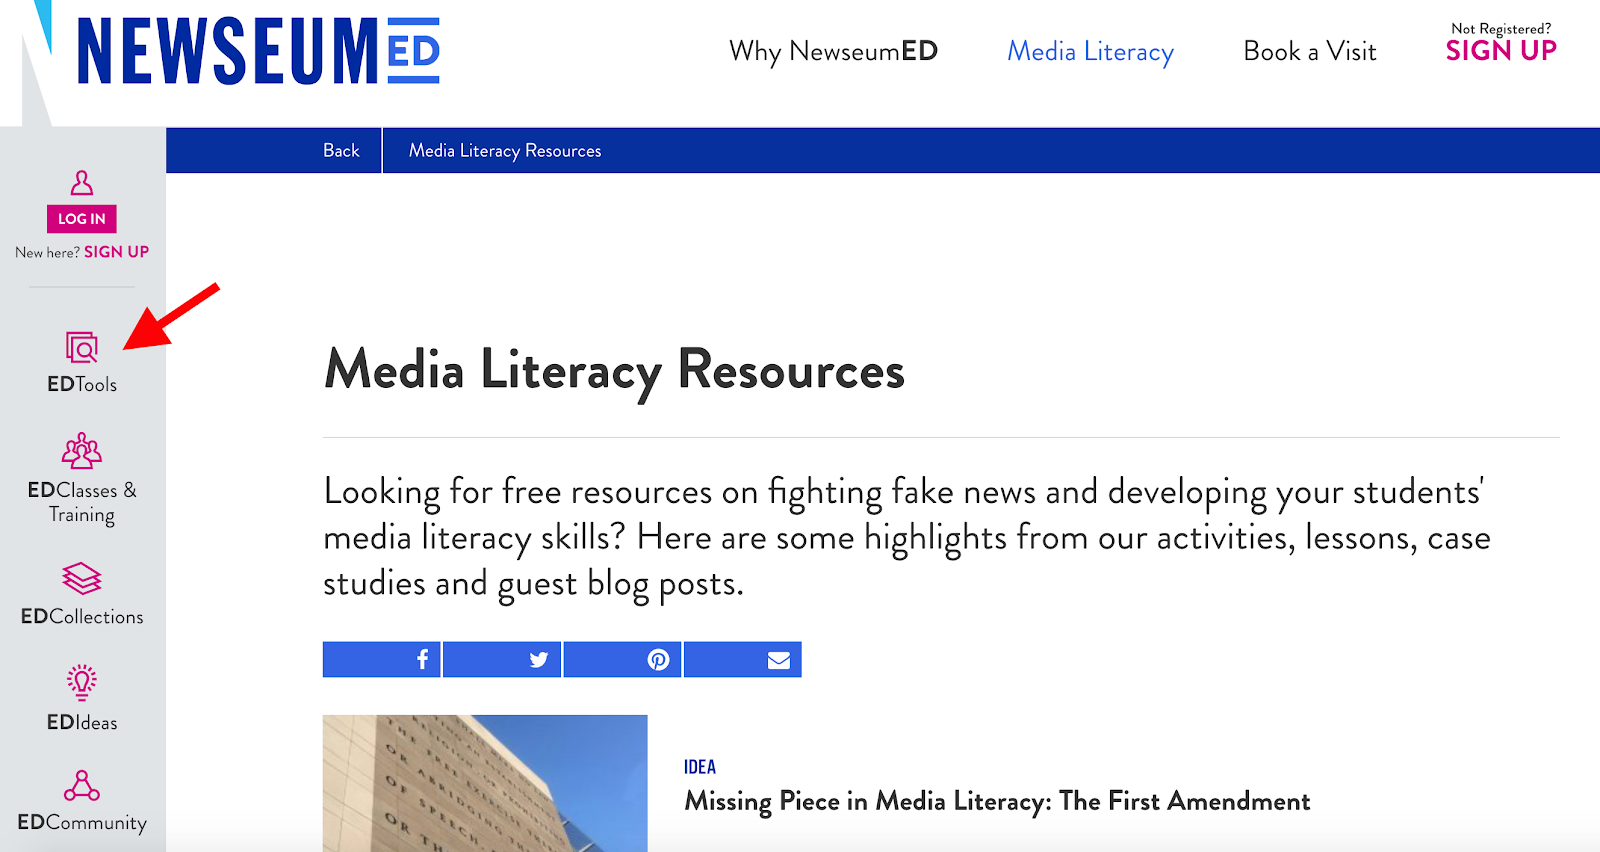 Newseum Ed Media Literacy Resources